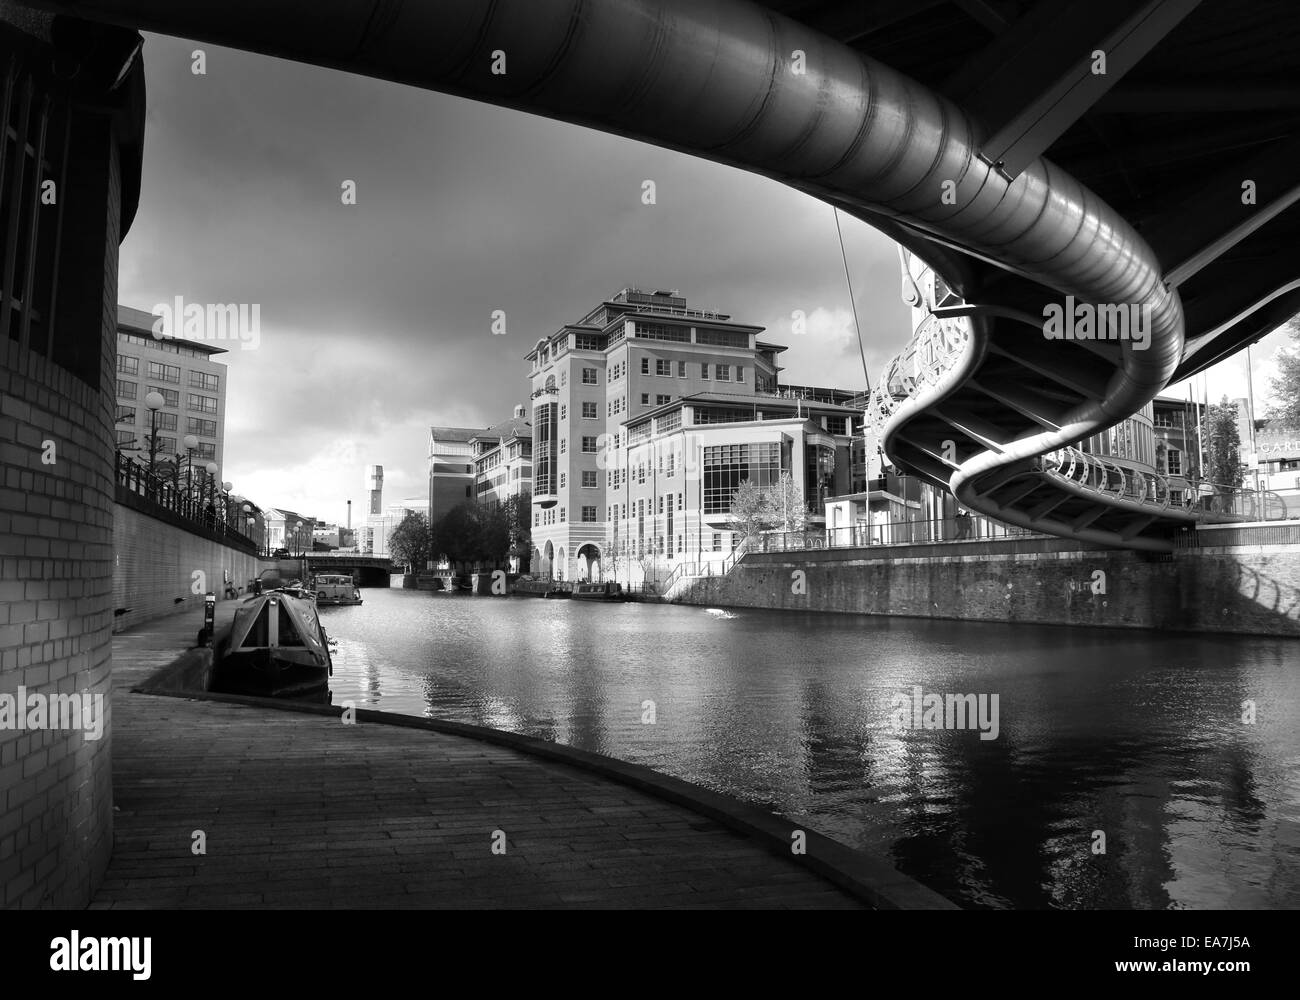 Urban landscape of the docks at Temple Quays in Bristol's Temple Quarter, in evening light, taken from below - Stock Image